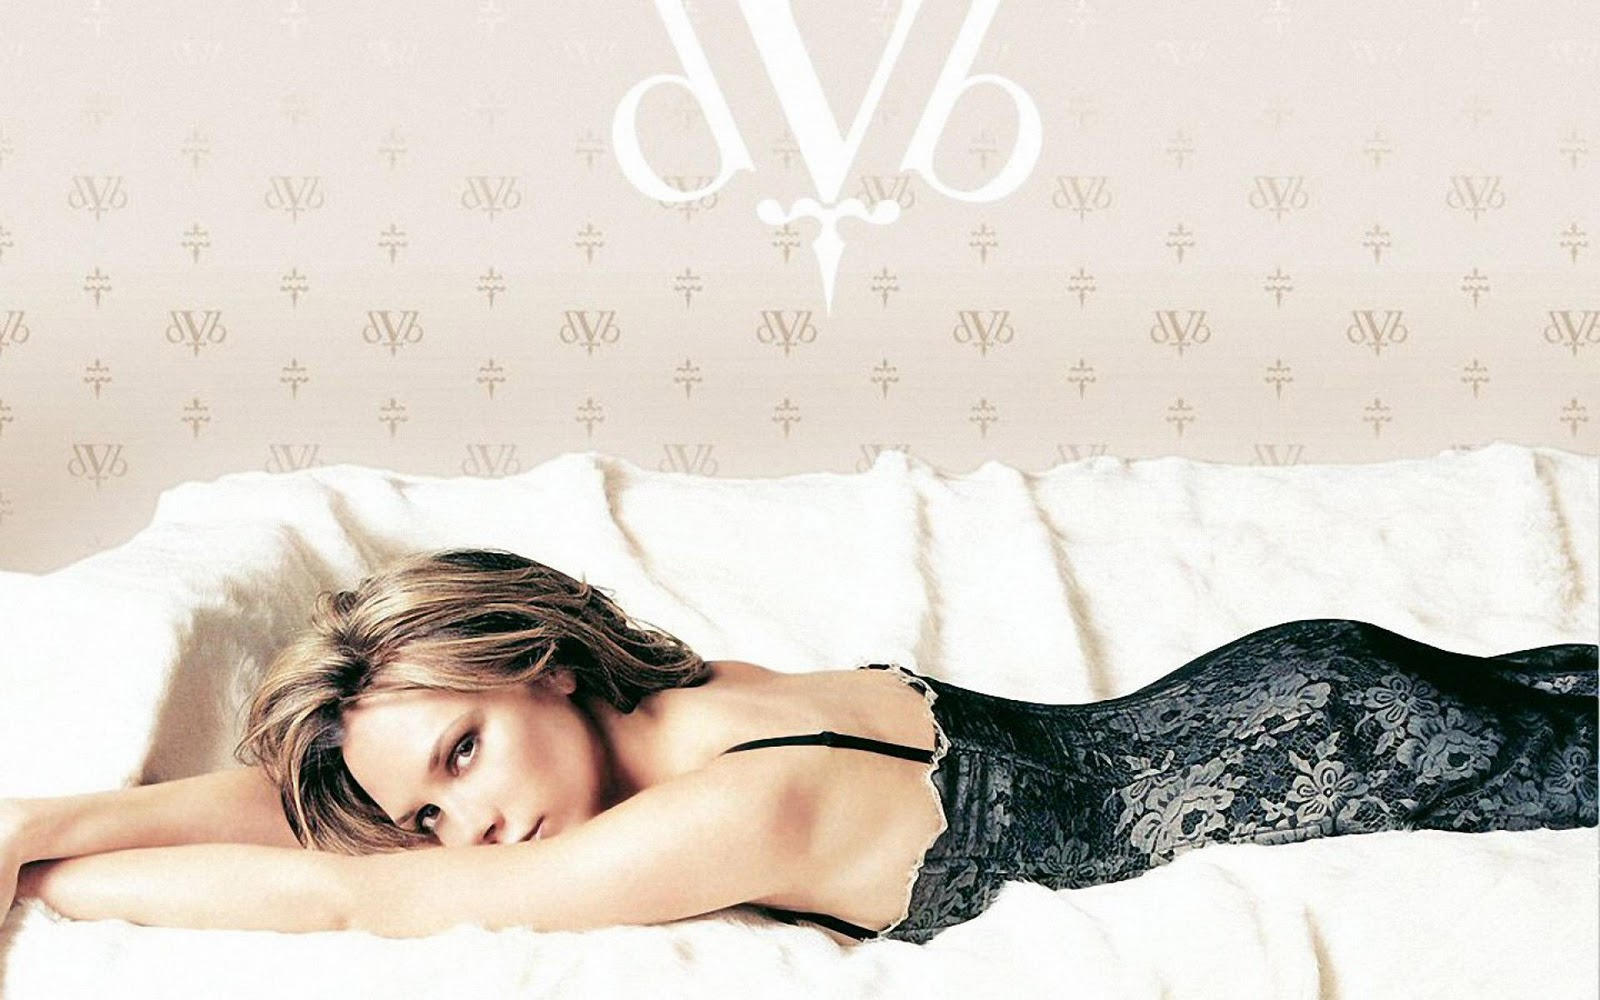 http://4.bp.blogspot.com/-RmNR9ztYlDs/TuosxNcwbEI/AAAAAAAAAuo/vRVnVQ-khyo/s1600/Victoria-Beckham-pictures-pc-desktop-Wallpapers-HD-photo-images-6.jpg